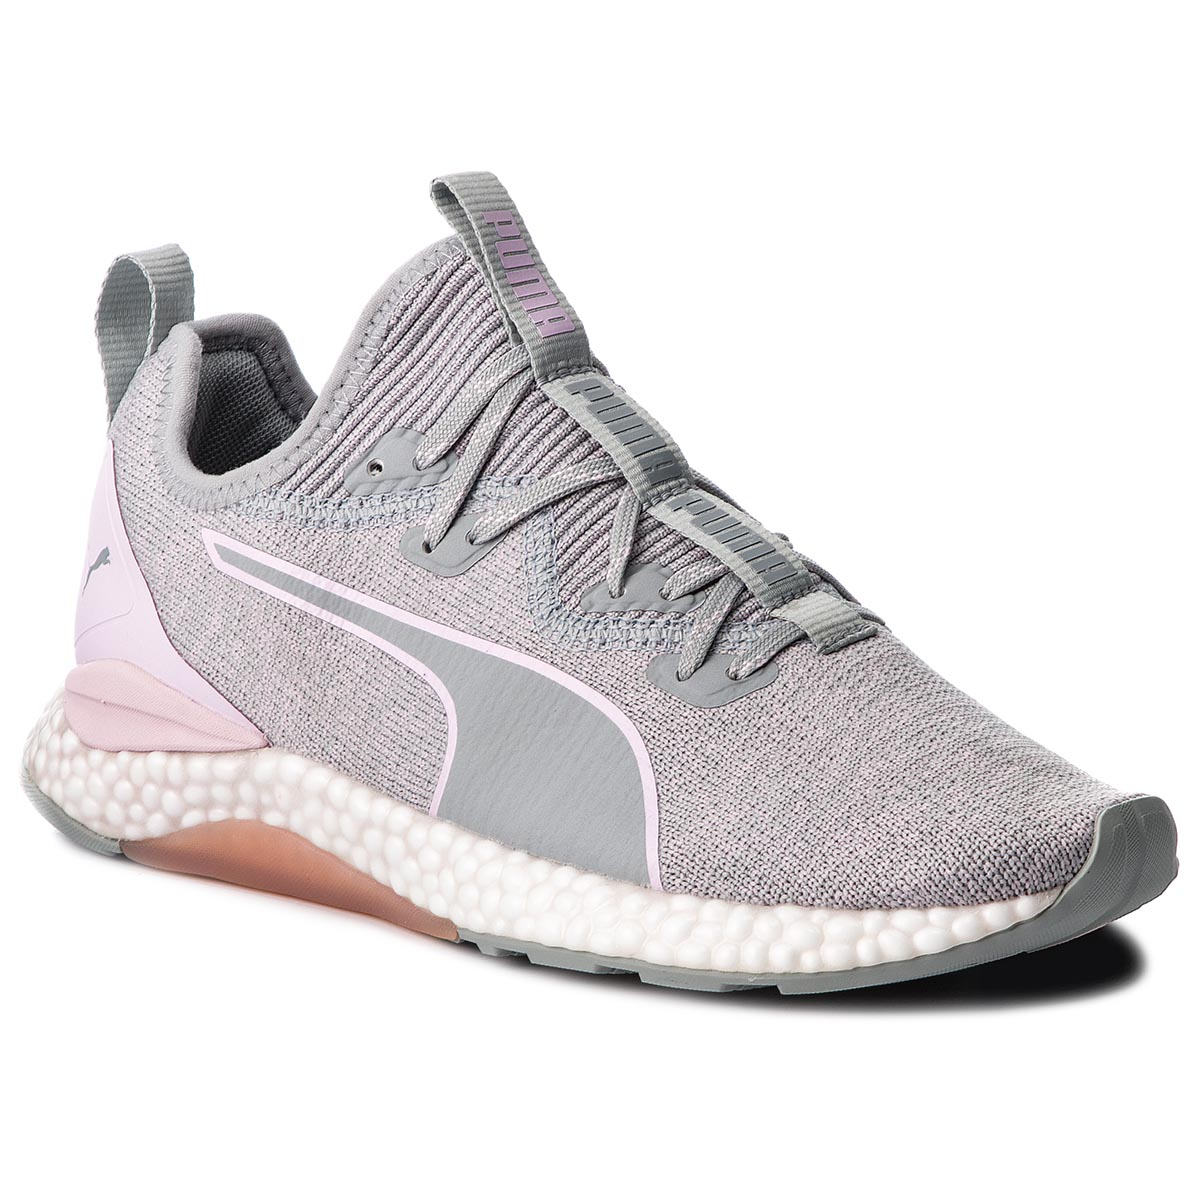 Buty PUMA - Hybrid Runner 191112 04 Quarry/Winsome Orchid